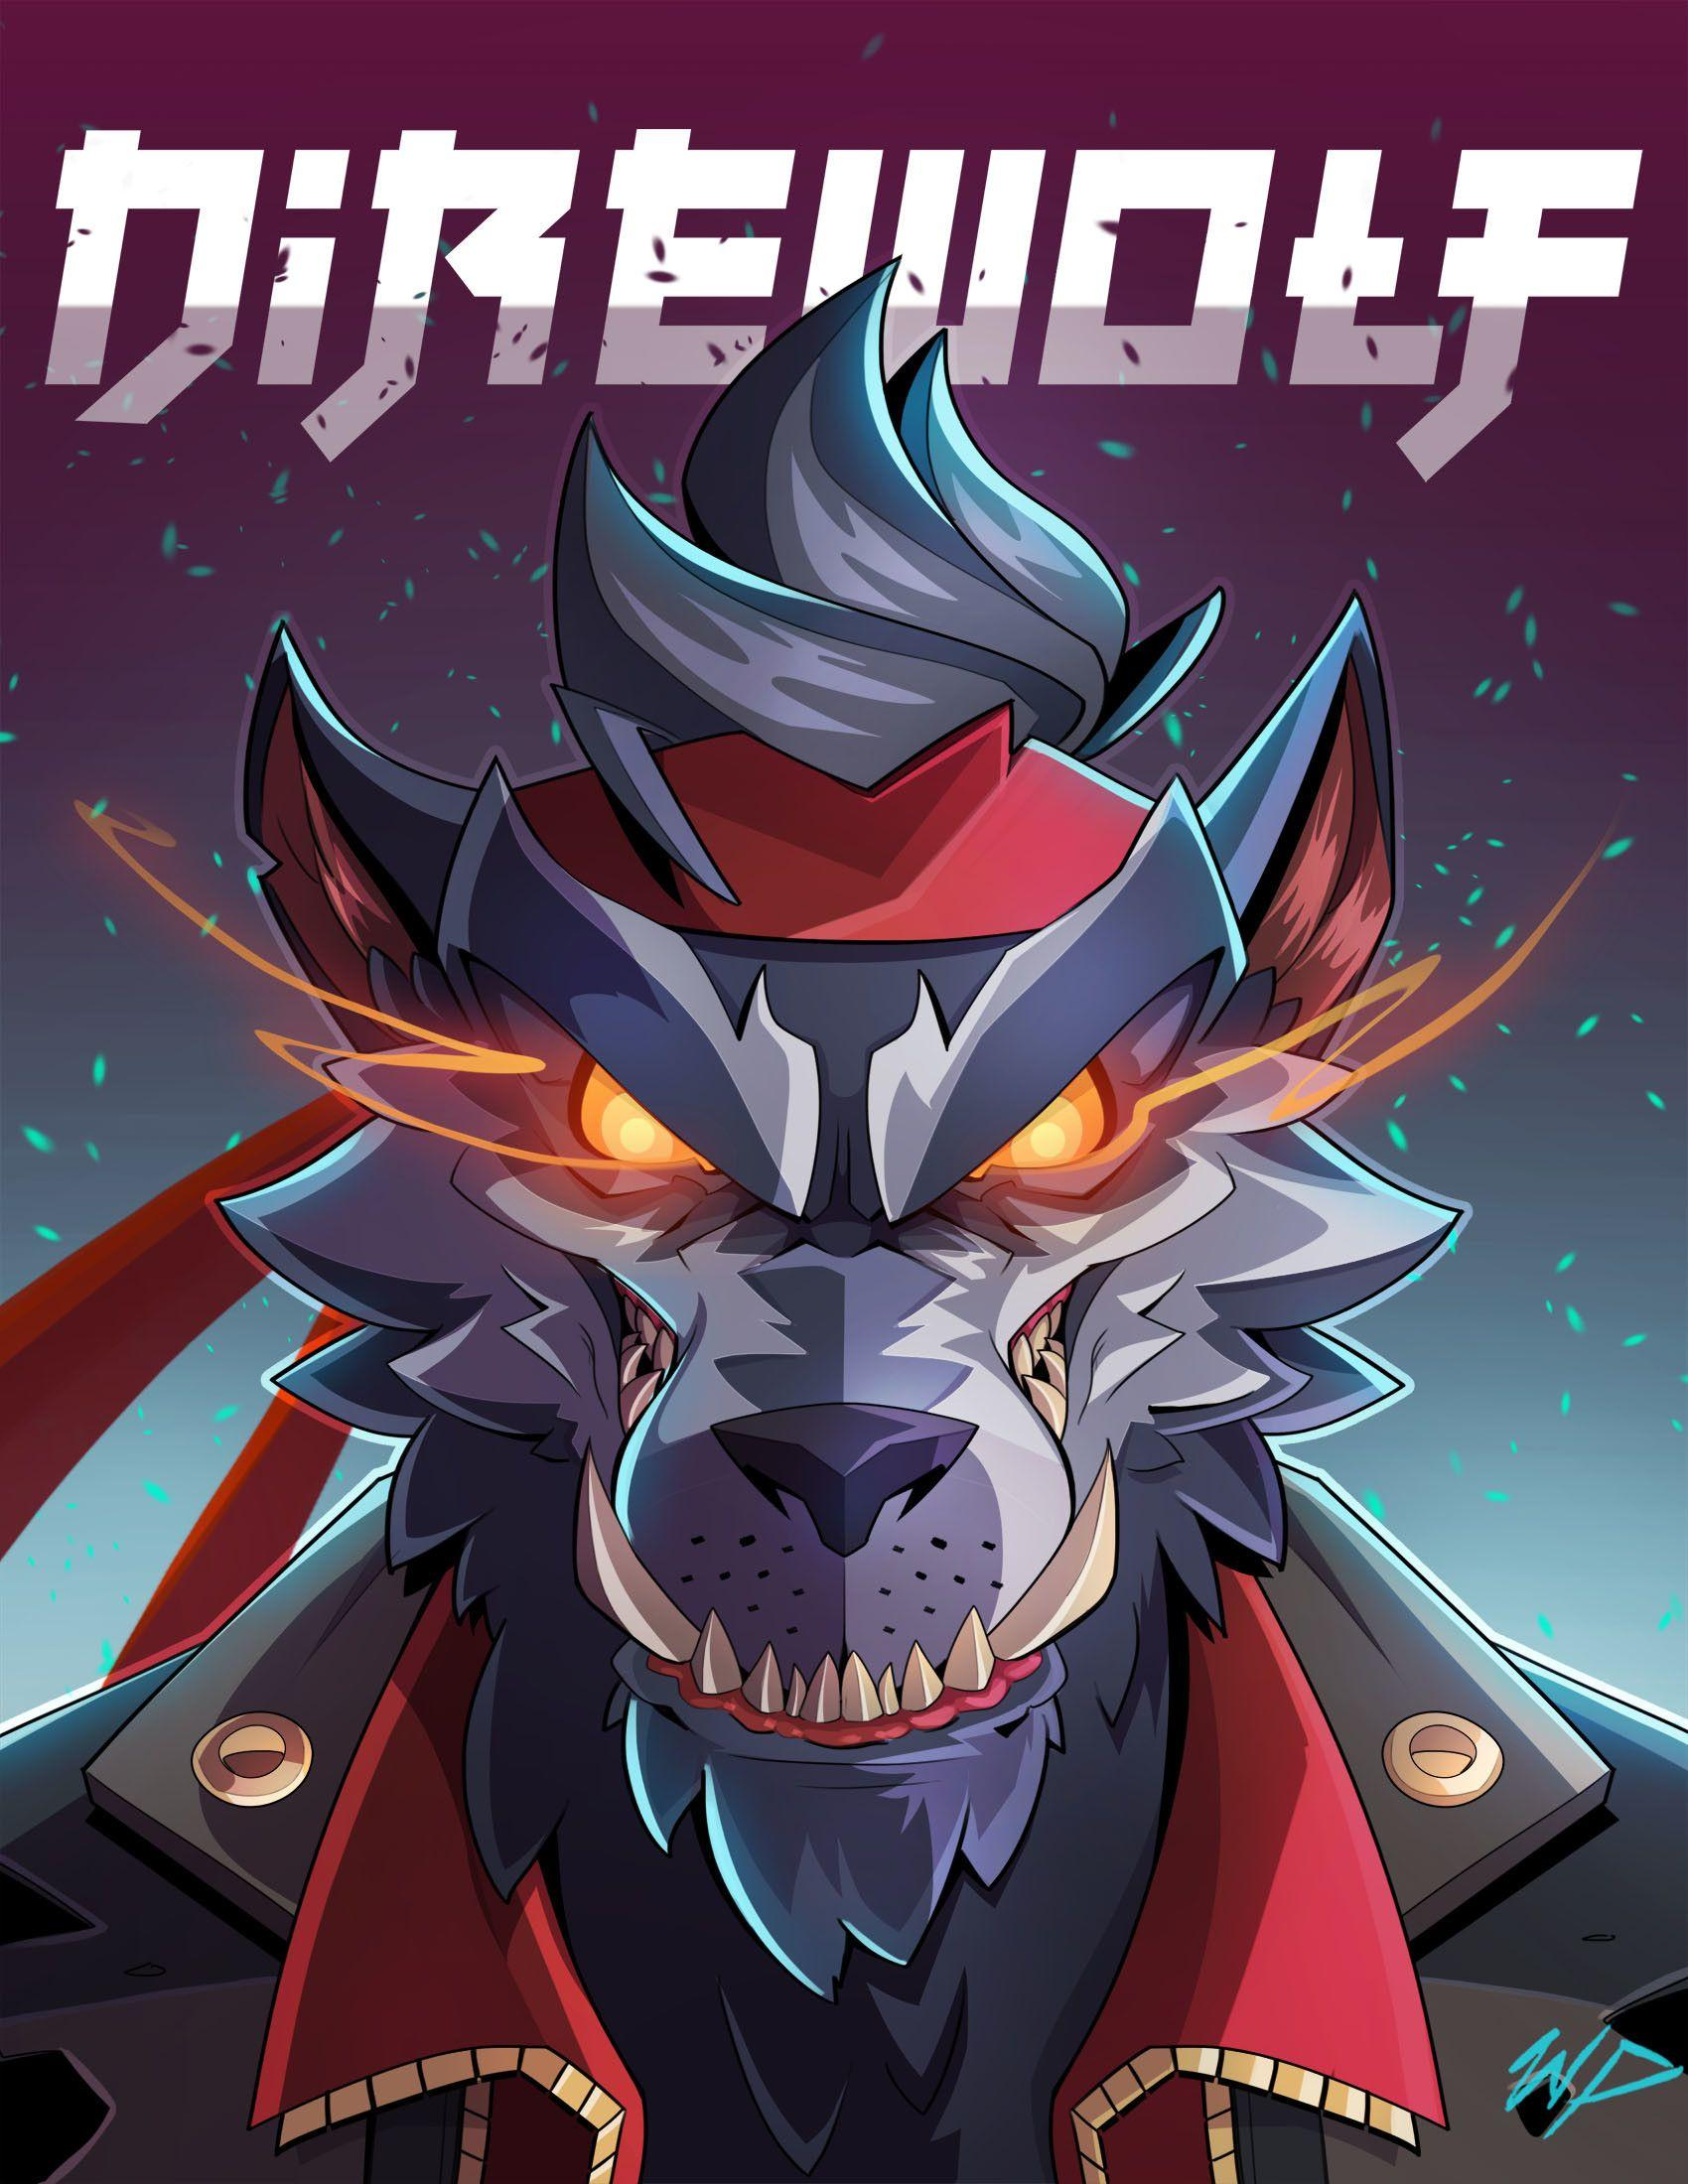 Fortnite Dire Werewolf Amazing Backgrounds by William Puekker